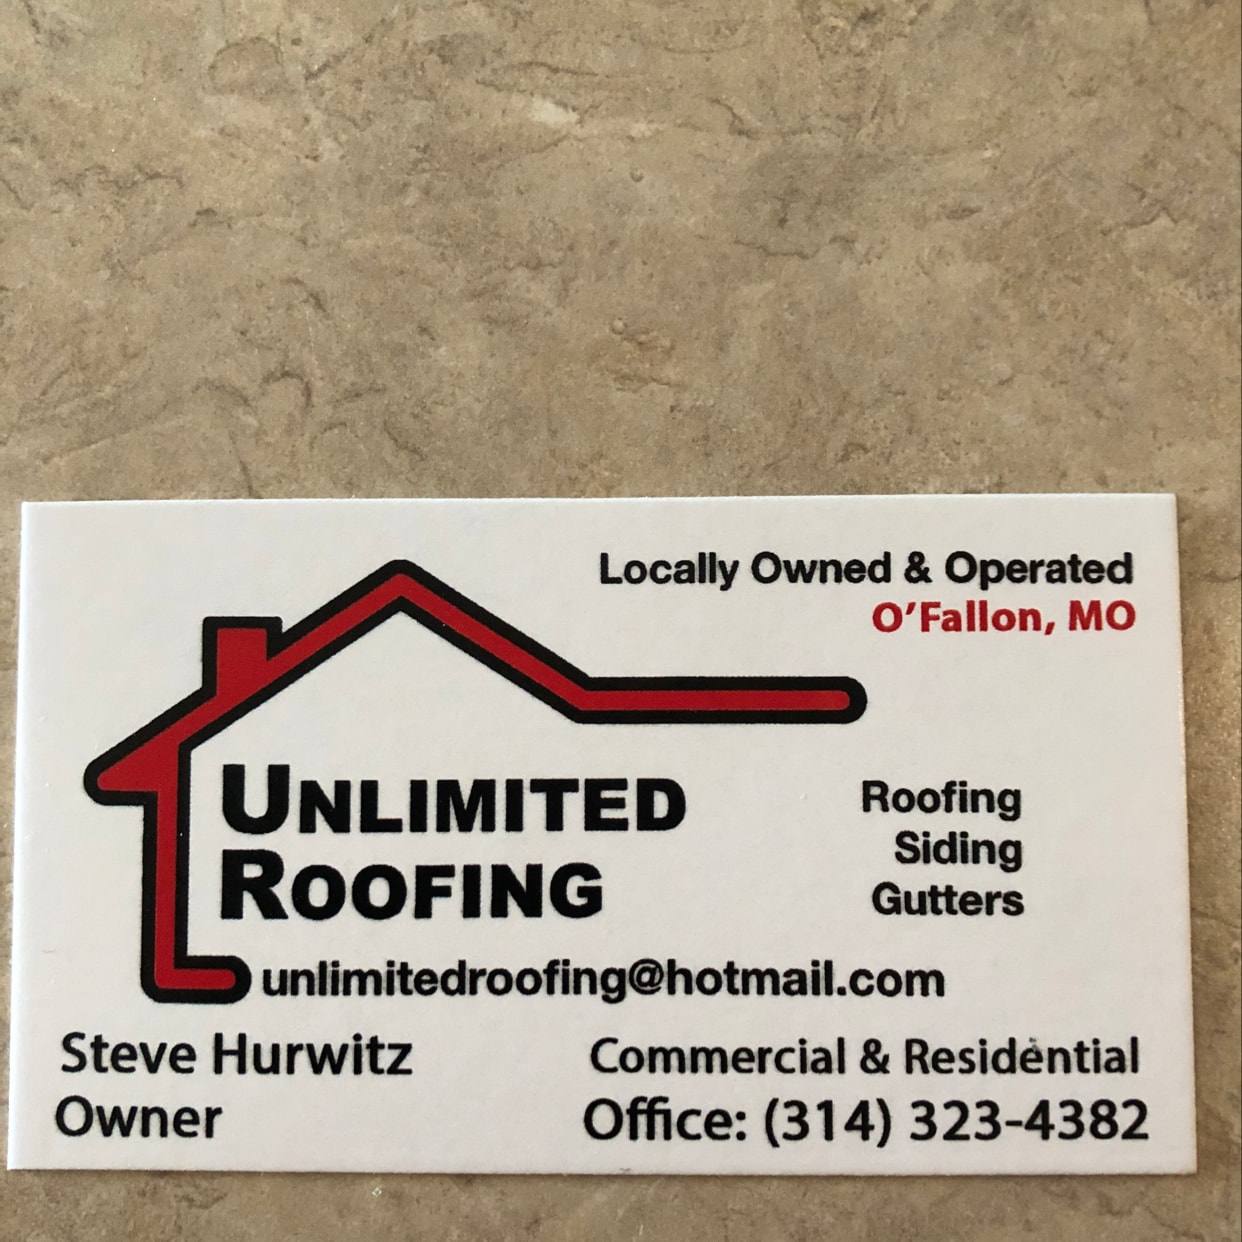 Unlimited roofing